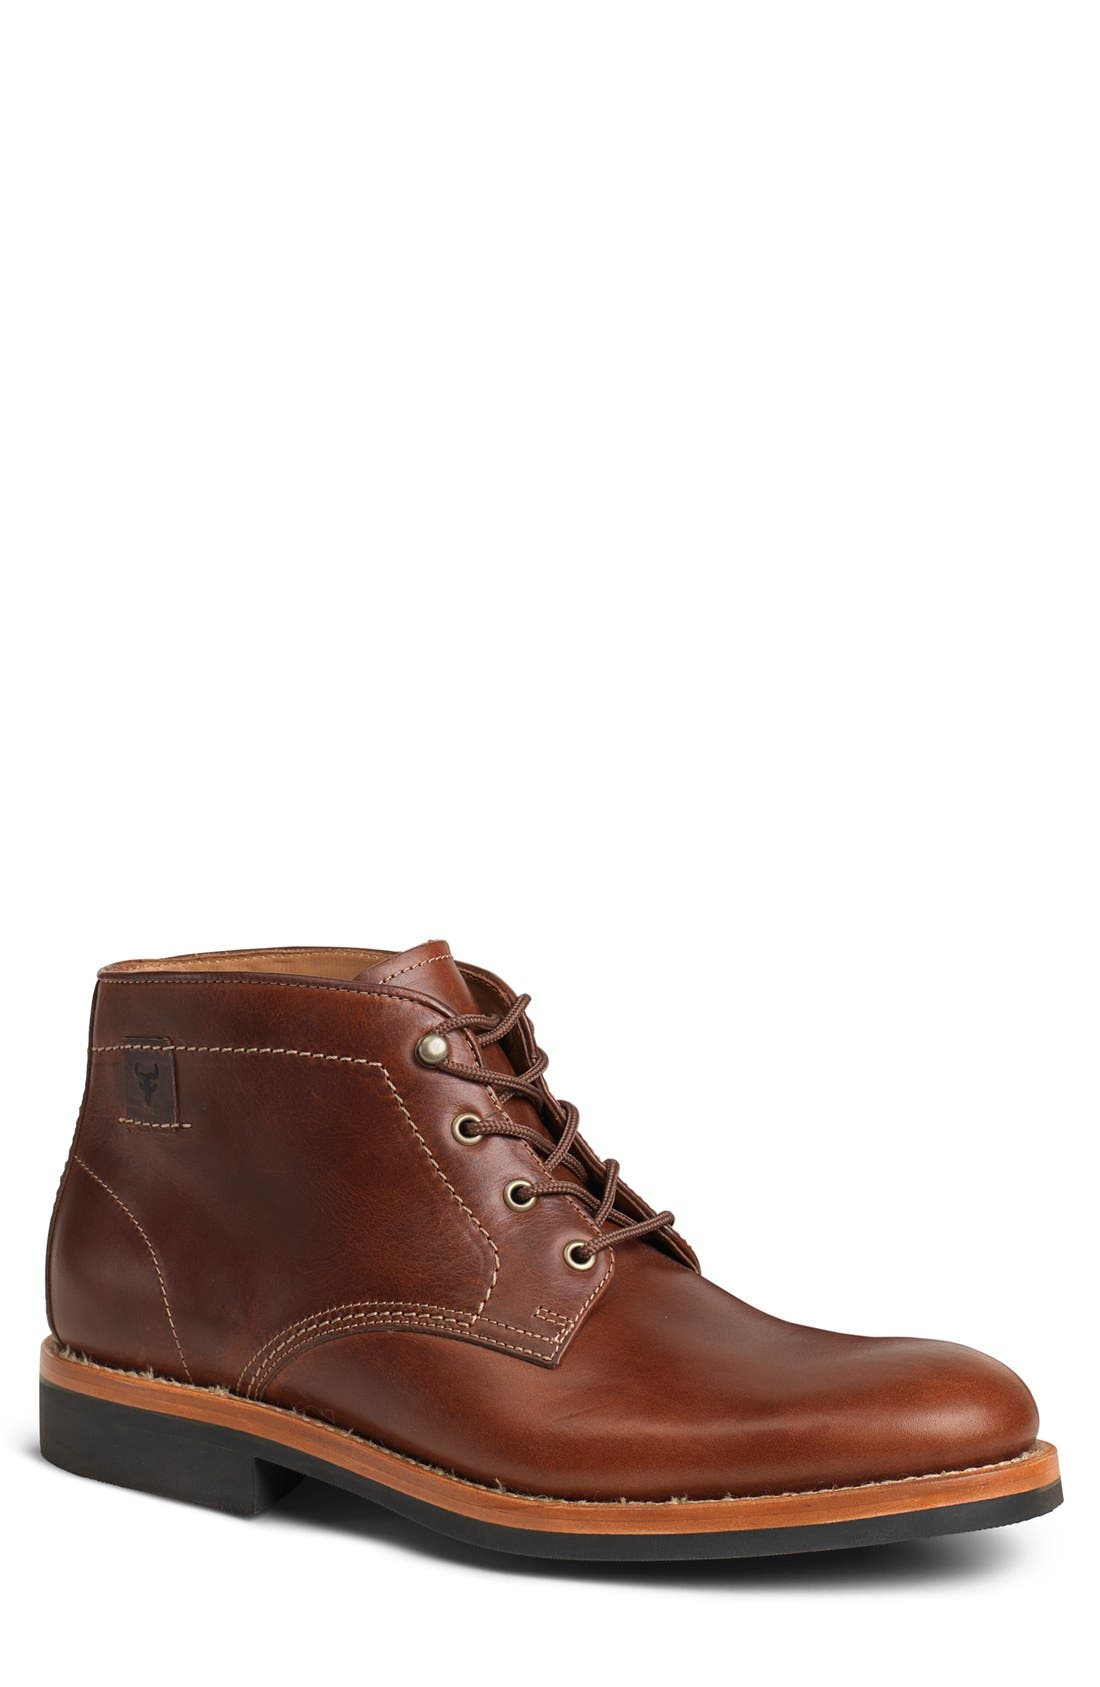 Main Image - Trask 'Irving Mid' Plain Toe Boot (Men)